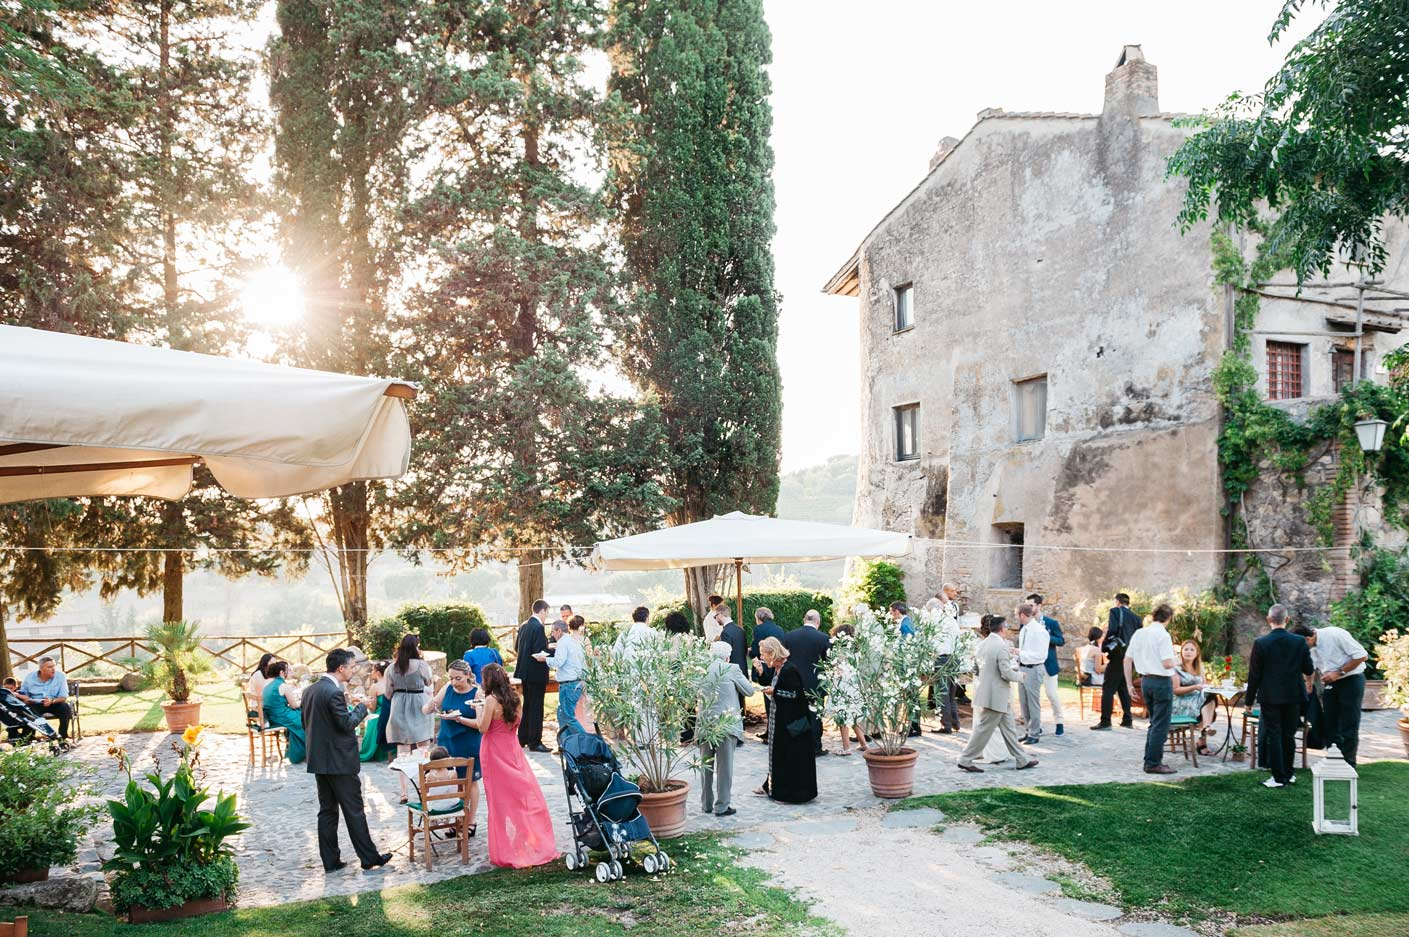 Reportage-Wedding-Photography-in-Italy-Reception